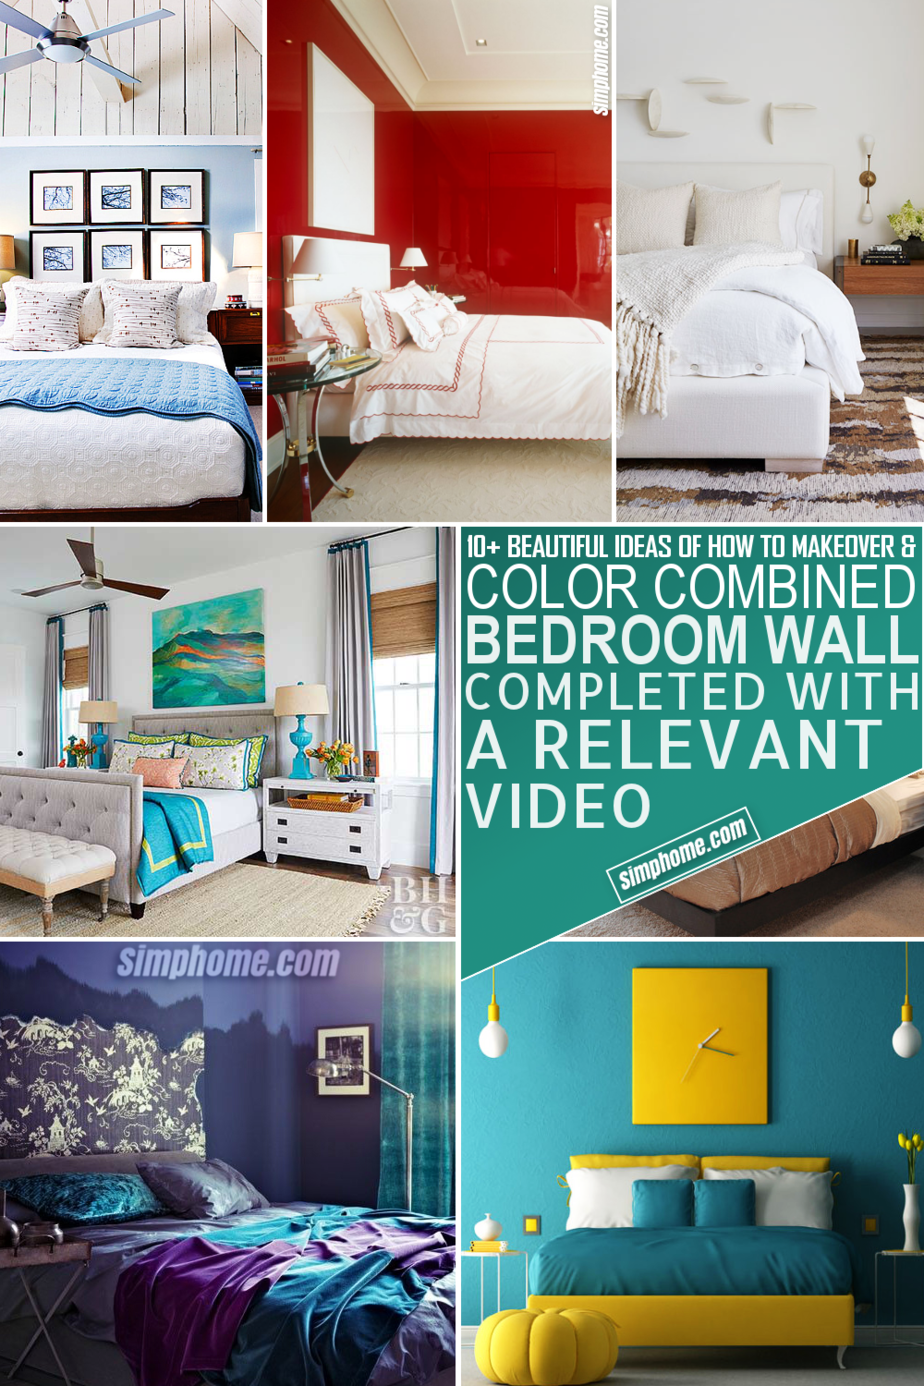 10 Bedroom color combination Ideas via Simphome.com Featured Image